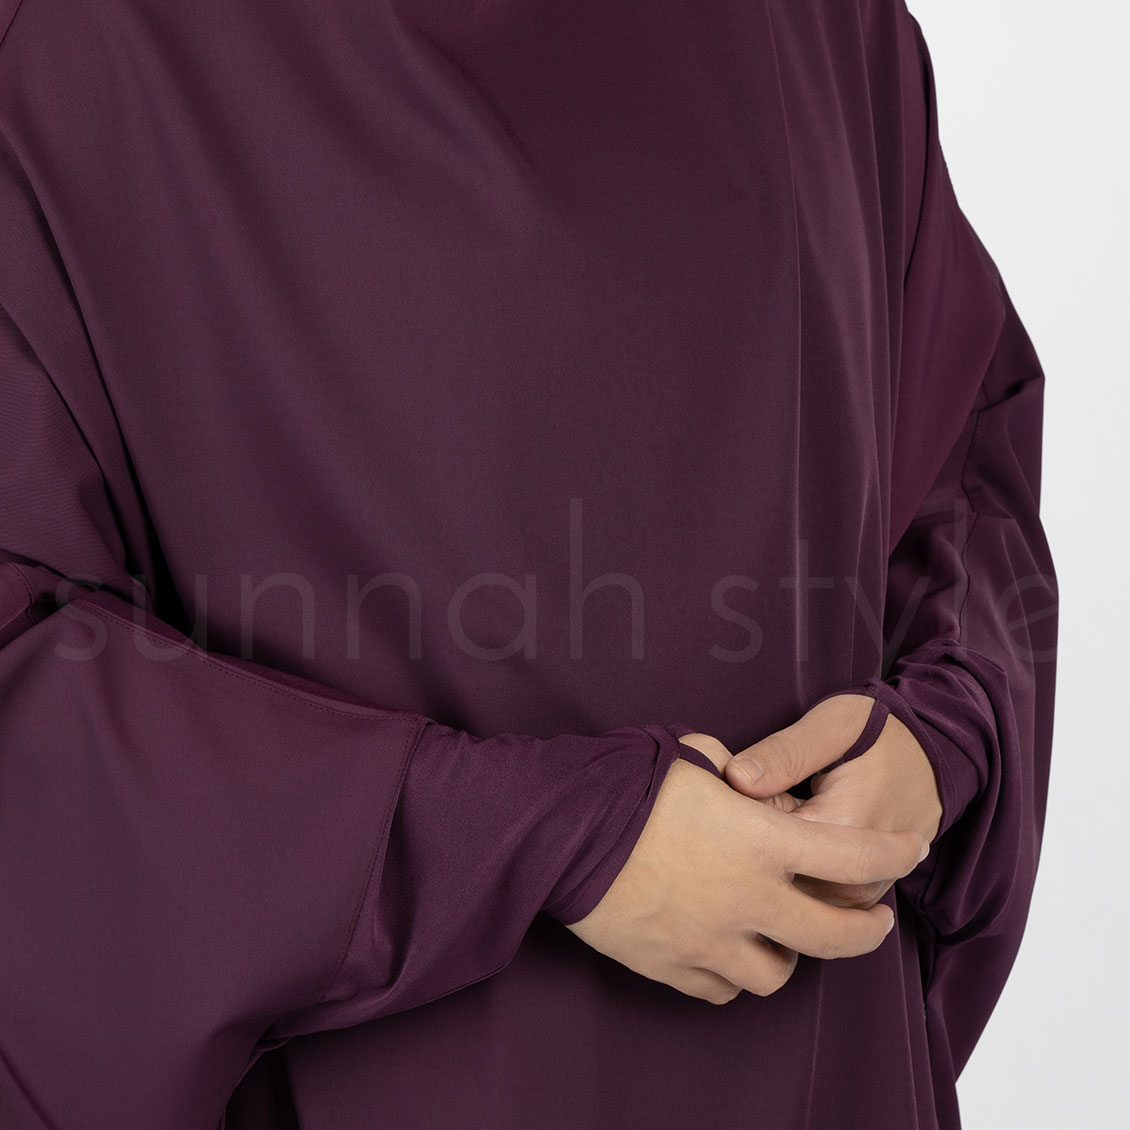 Signature Jilbab Top - Thigh Length (Mulberry)